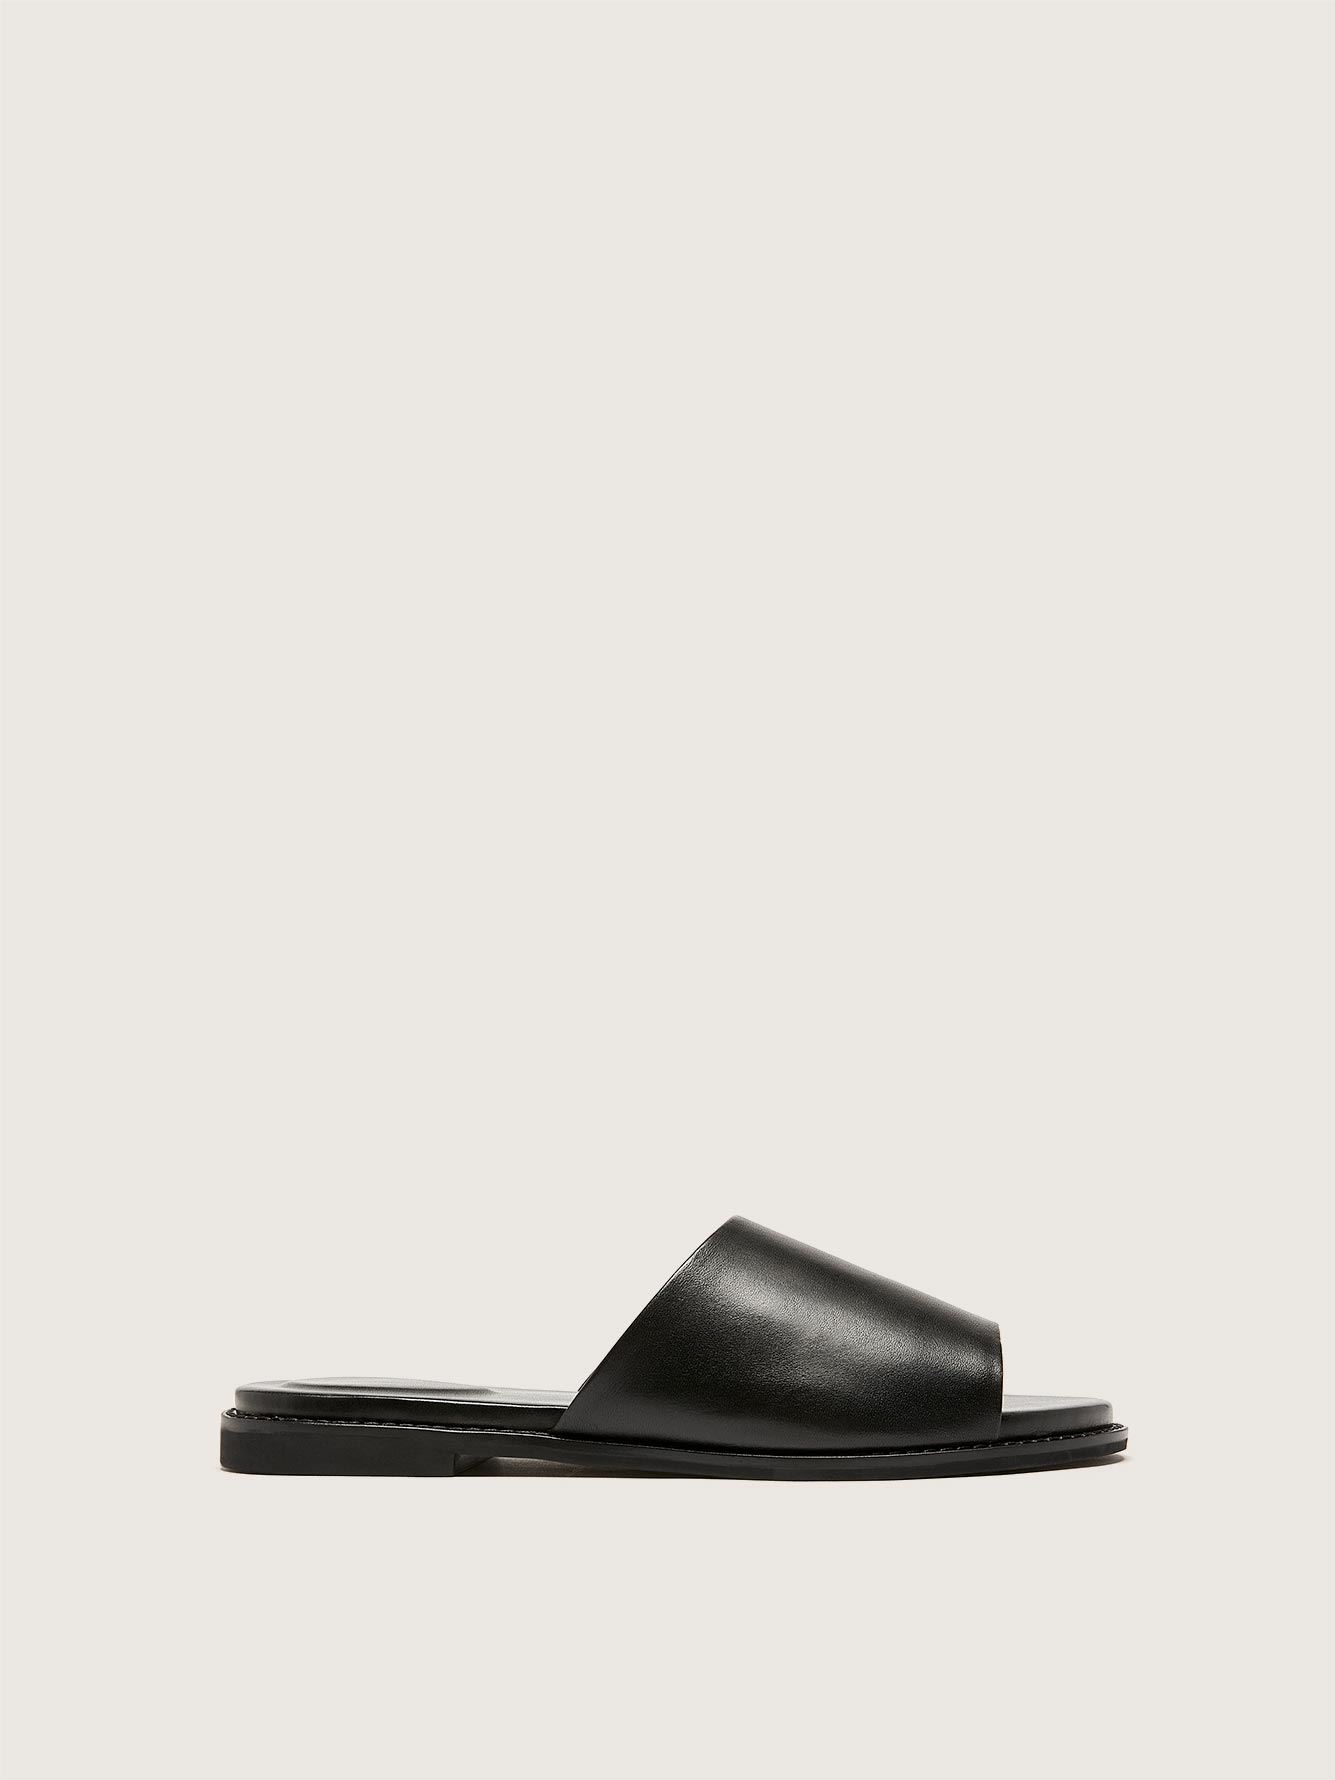 Wide Lexi Slide Sandal - Hush Puppies